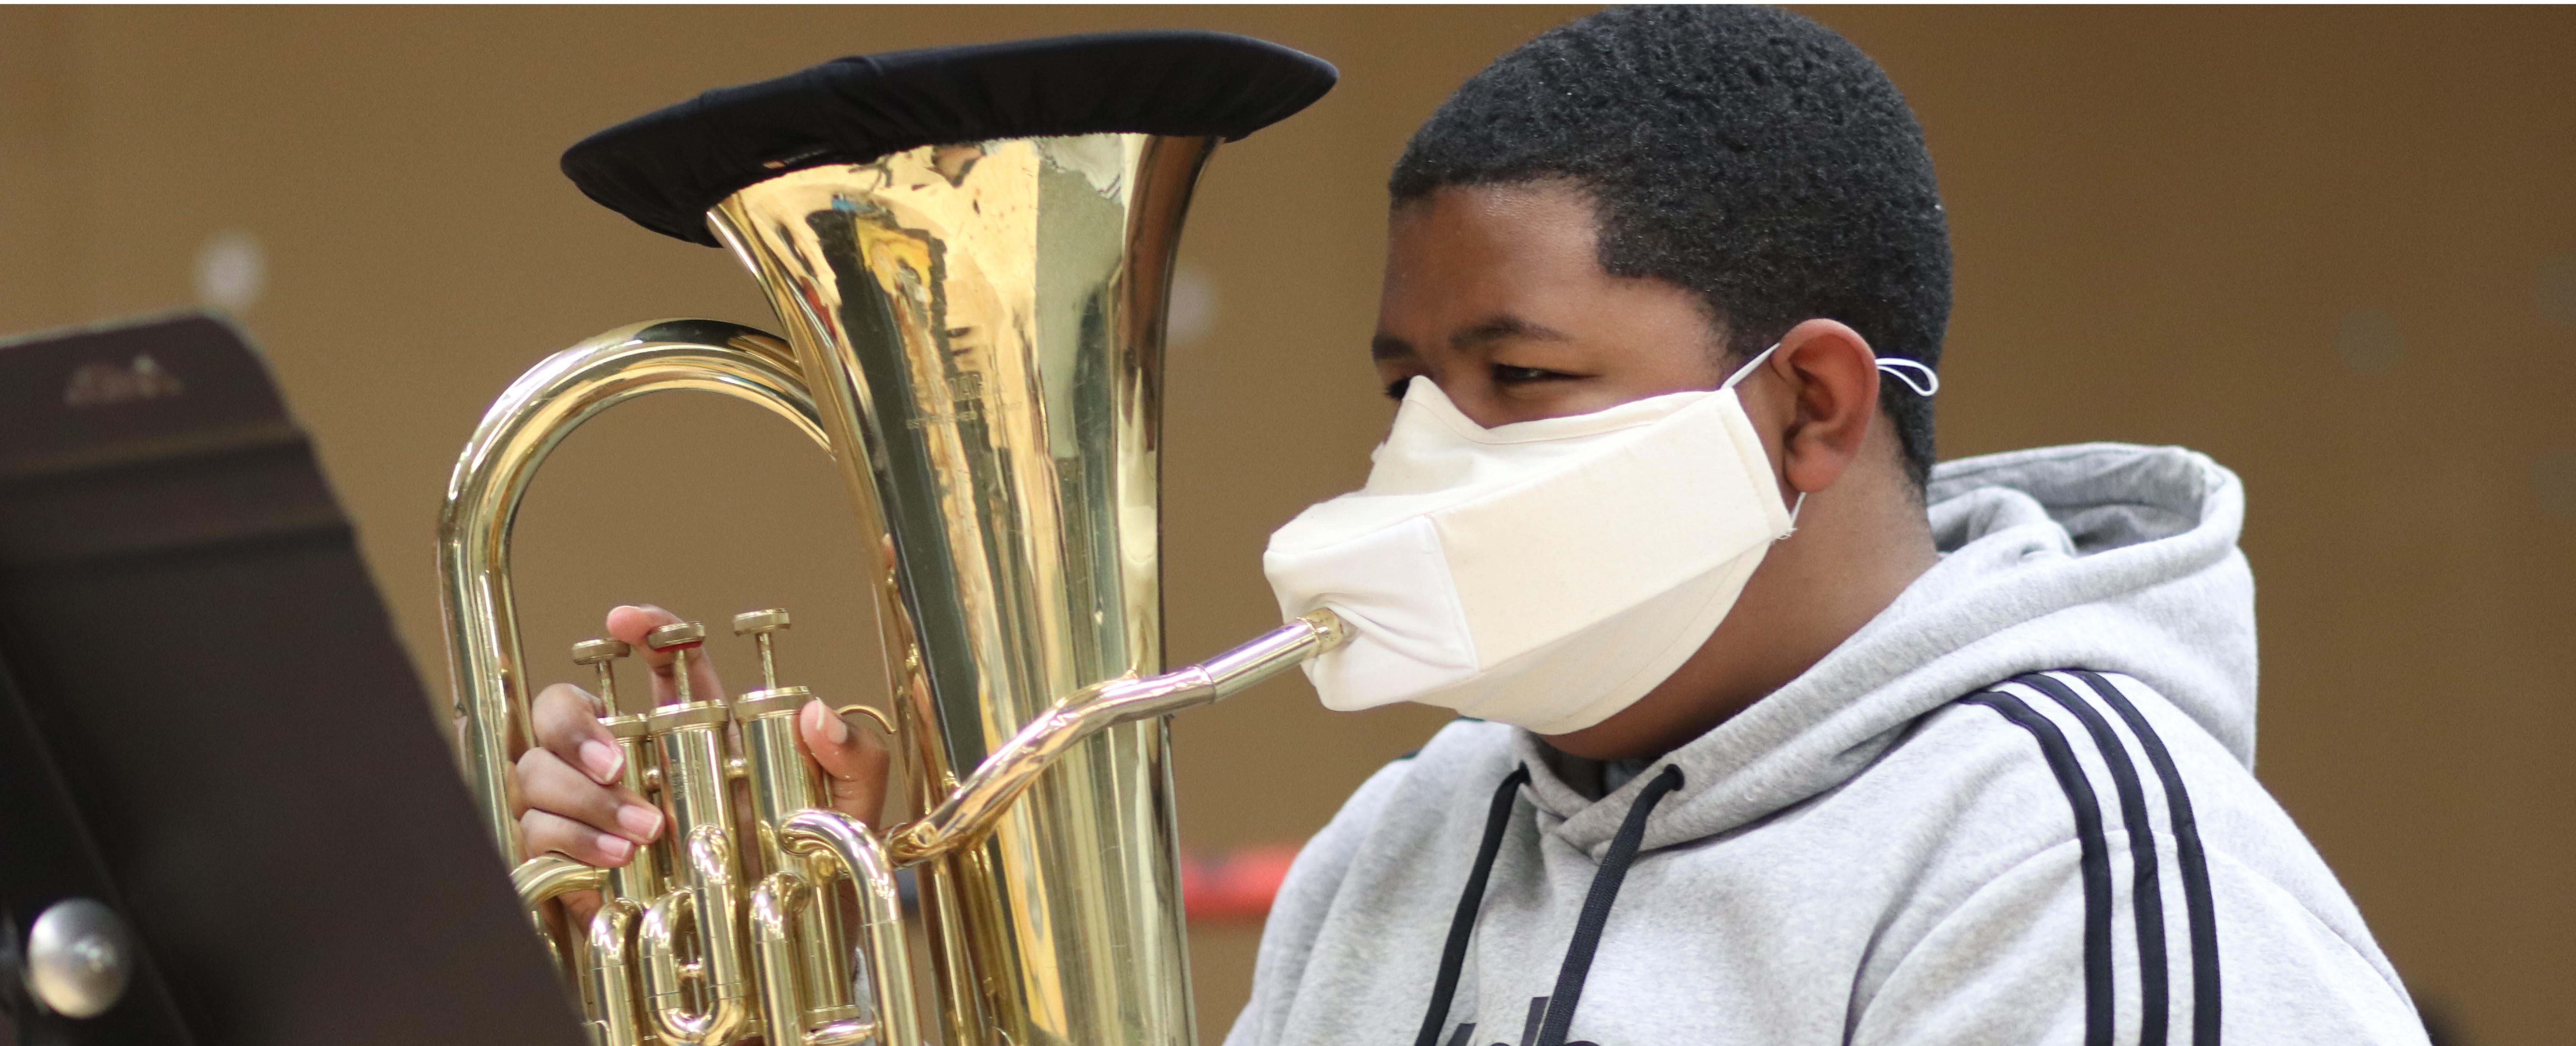 Student wearing a mask holding an instrument.